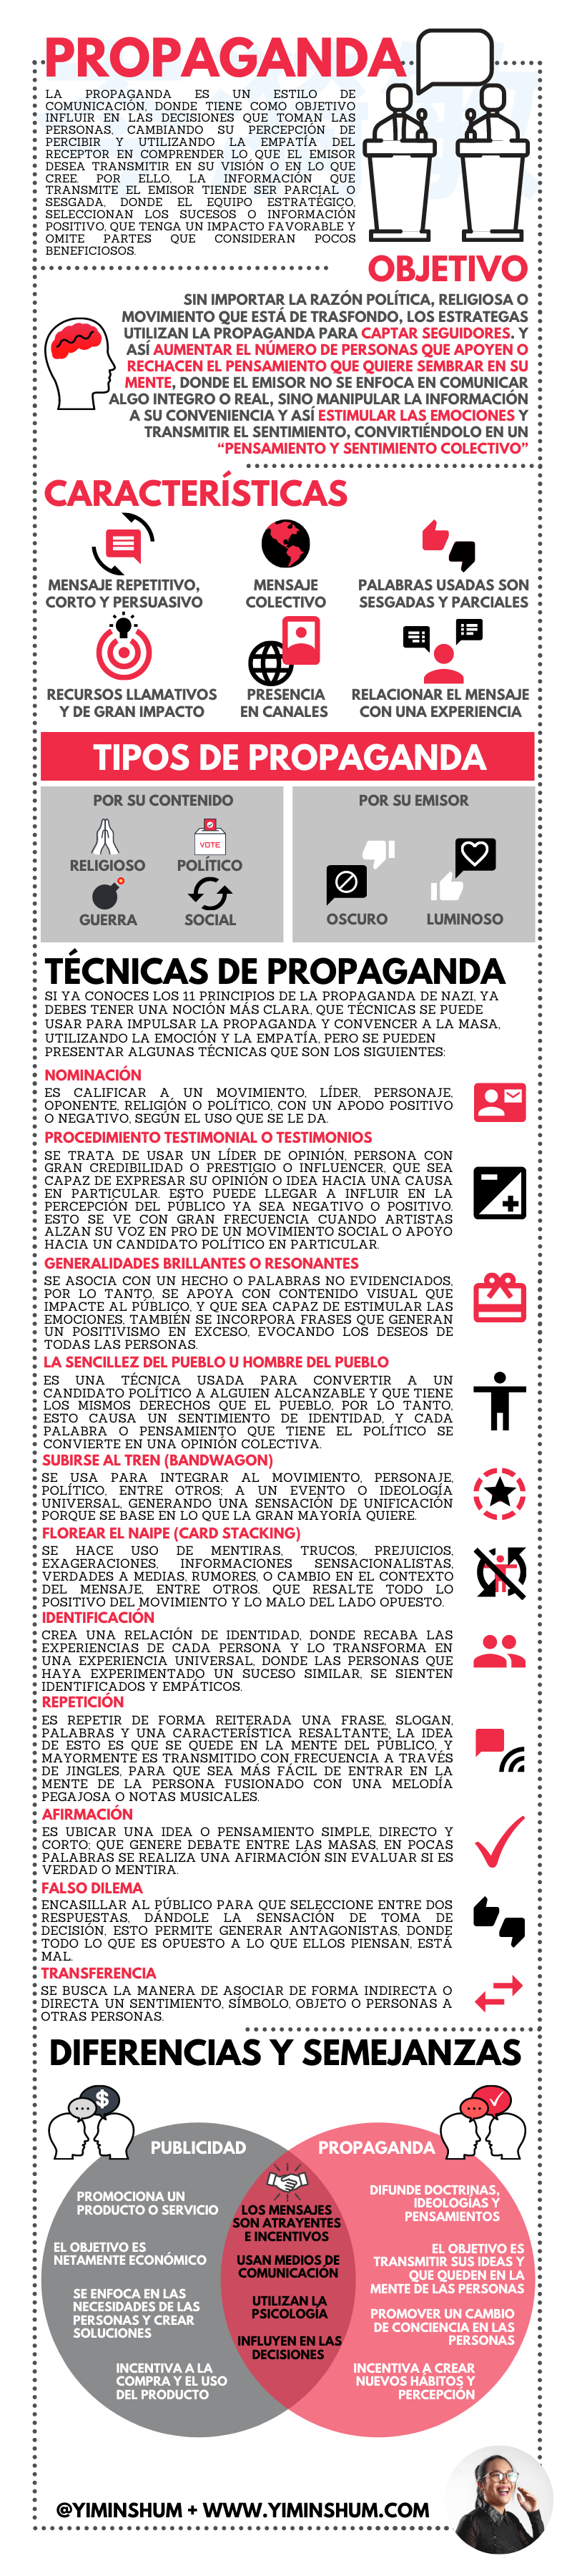 Qué es Propaganda #infografia #infographic #marketing